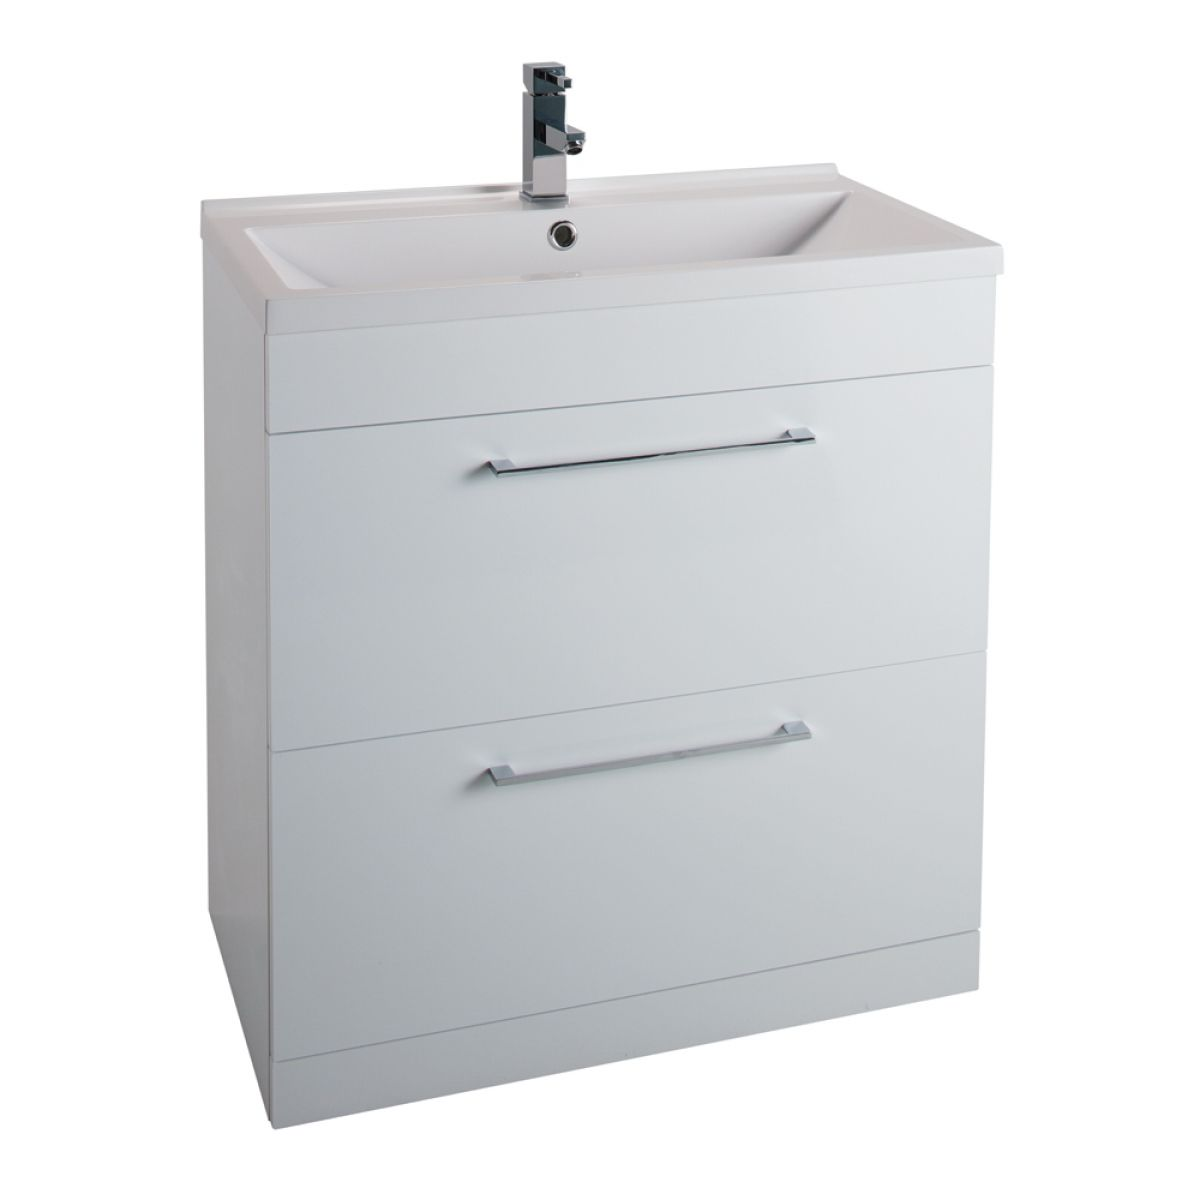 Cassellie Idon Gloss White 2 Drawer Vanity Unit with Basin 800mm